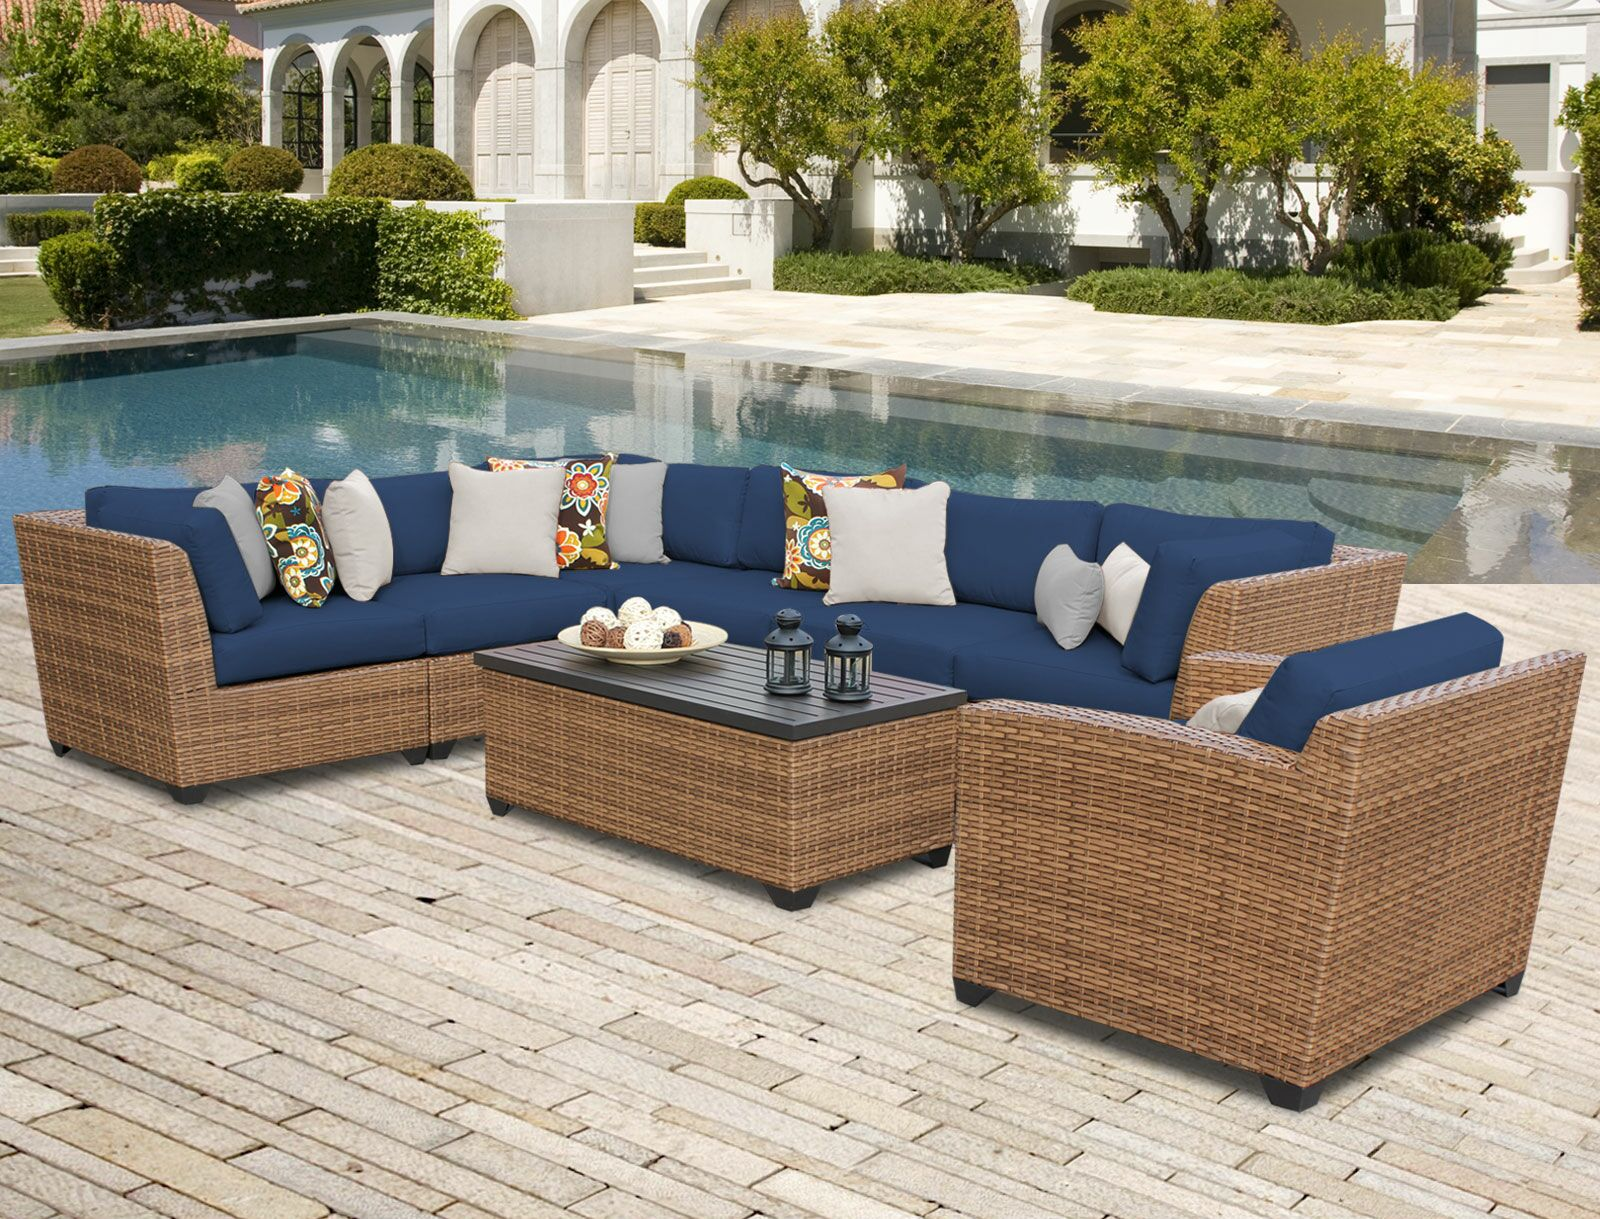 East Village 8 Piece Rattan Sectional Seating Group with Cushions Color: Navy